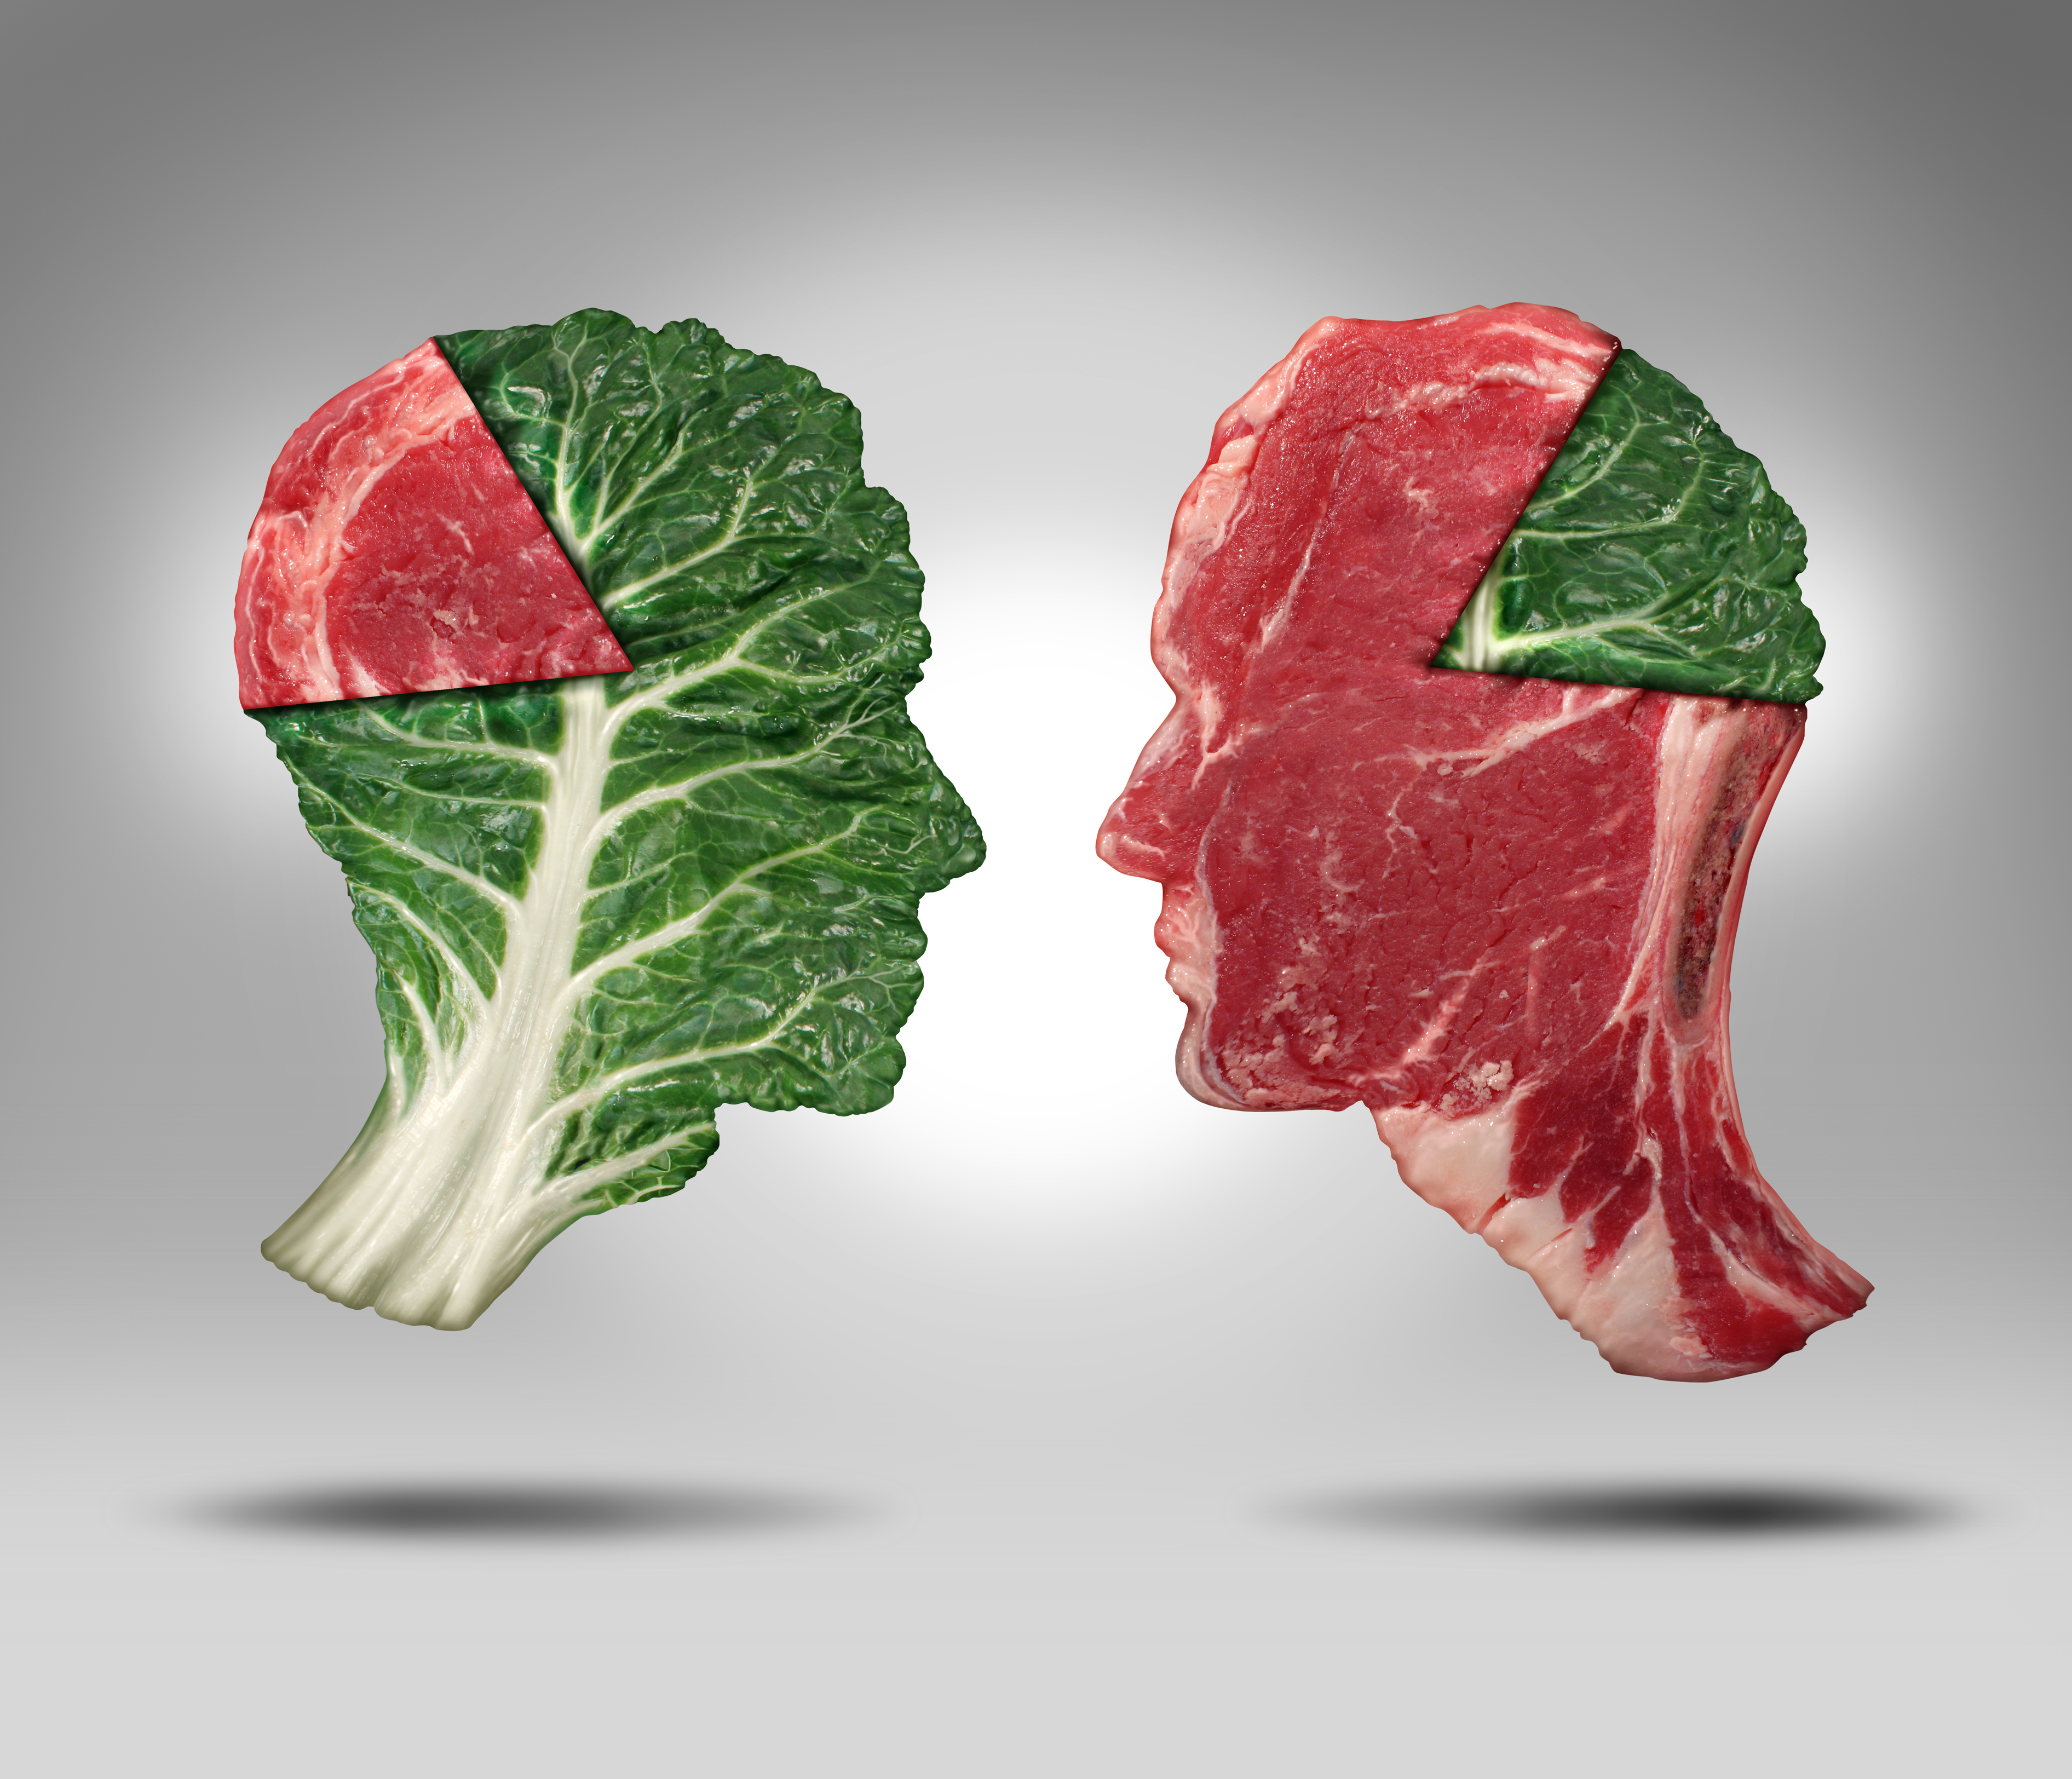 Omnivores vs. Herbivores: How Meat Consumption Affects Our ...